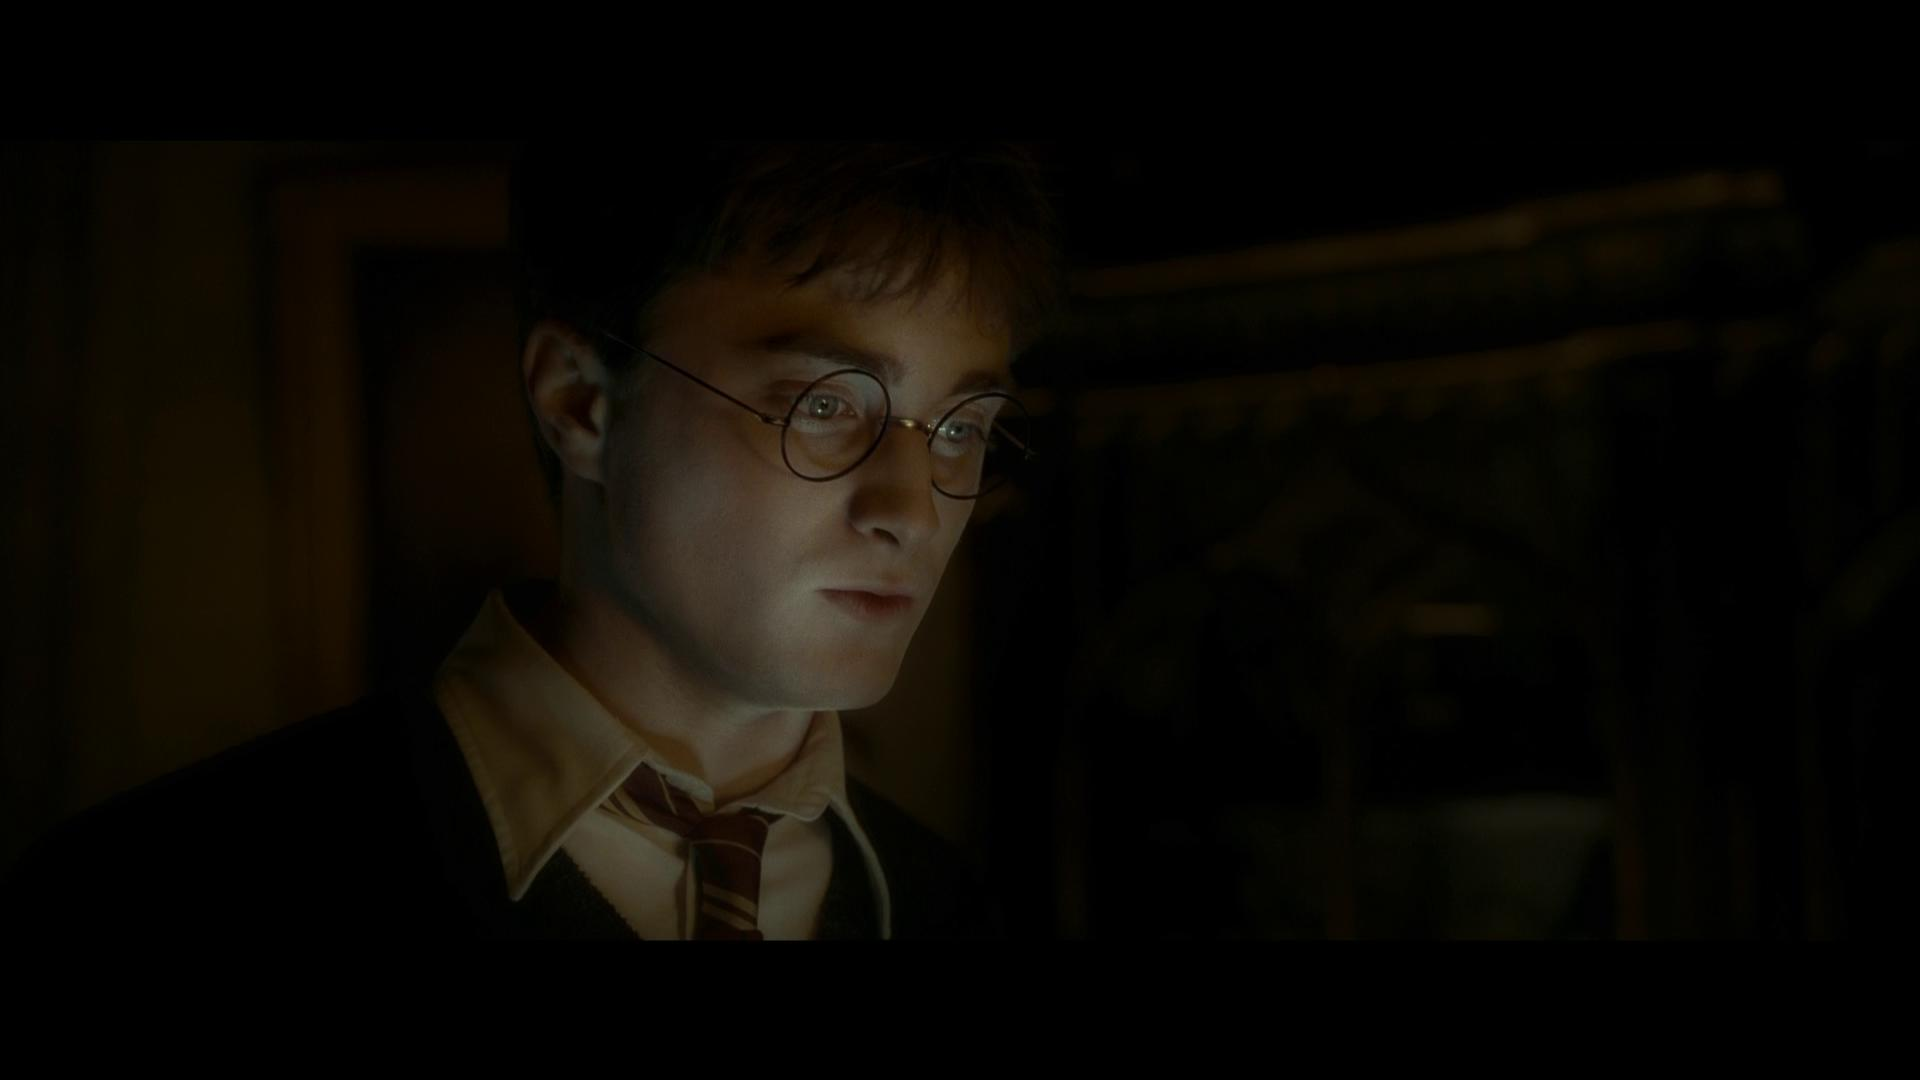 Harry Potter: 8-Film Collection - 4K UHD Review - Page 7 of